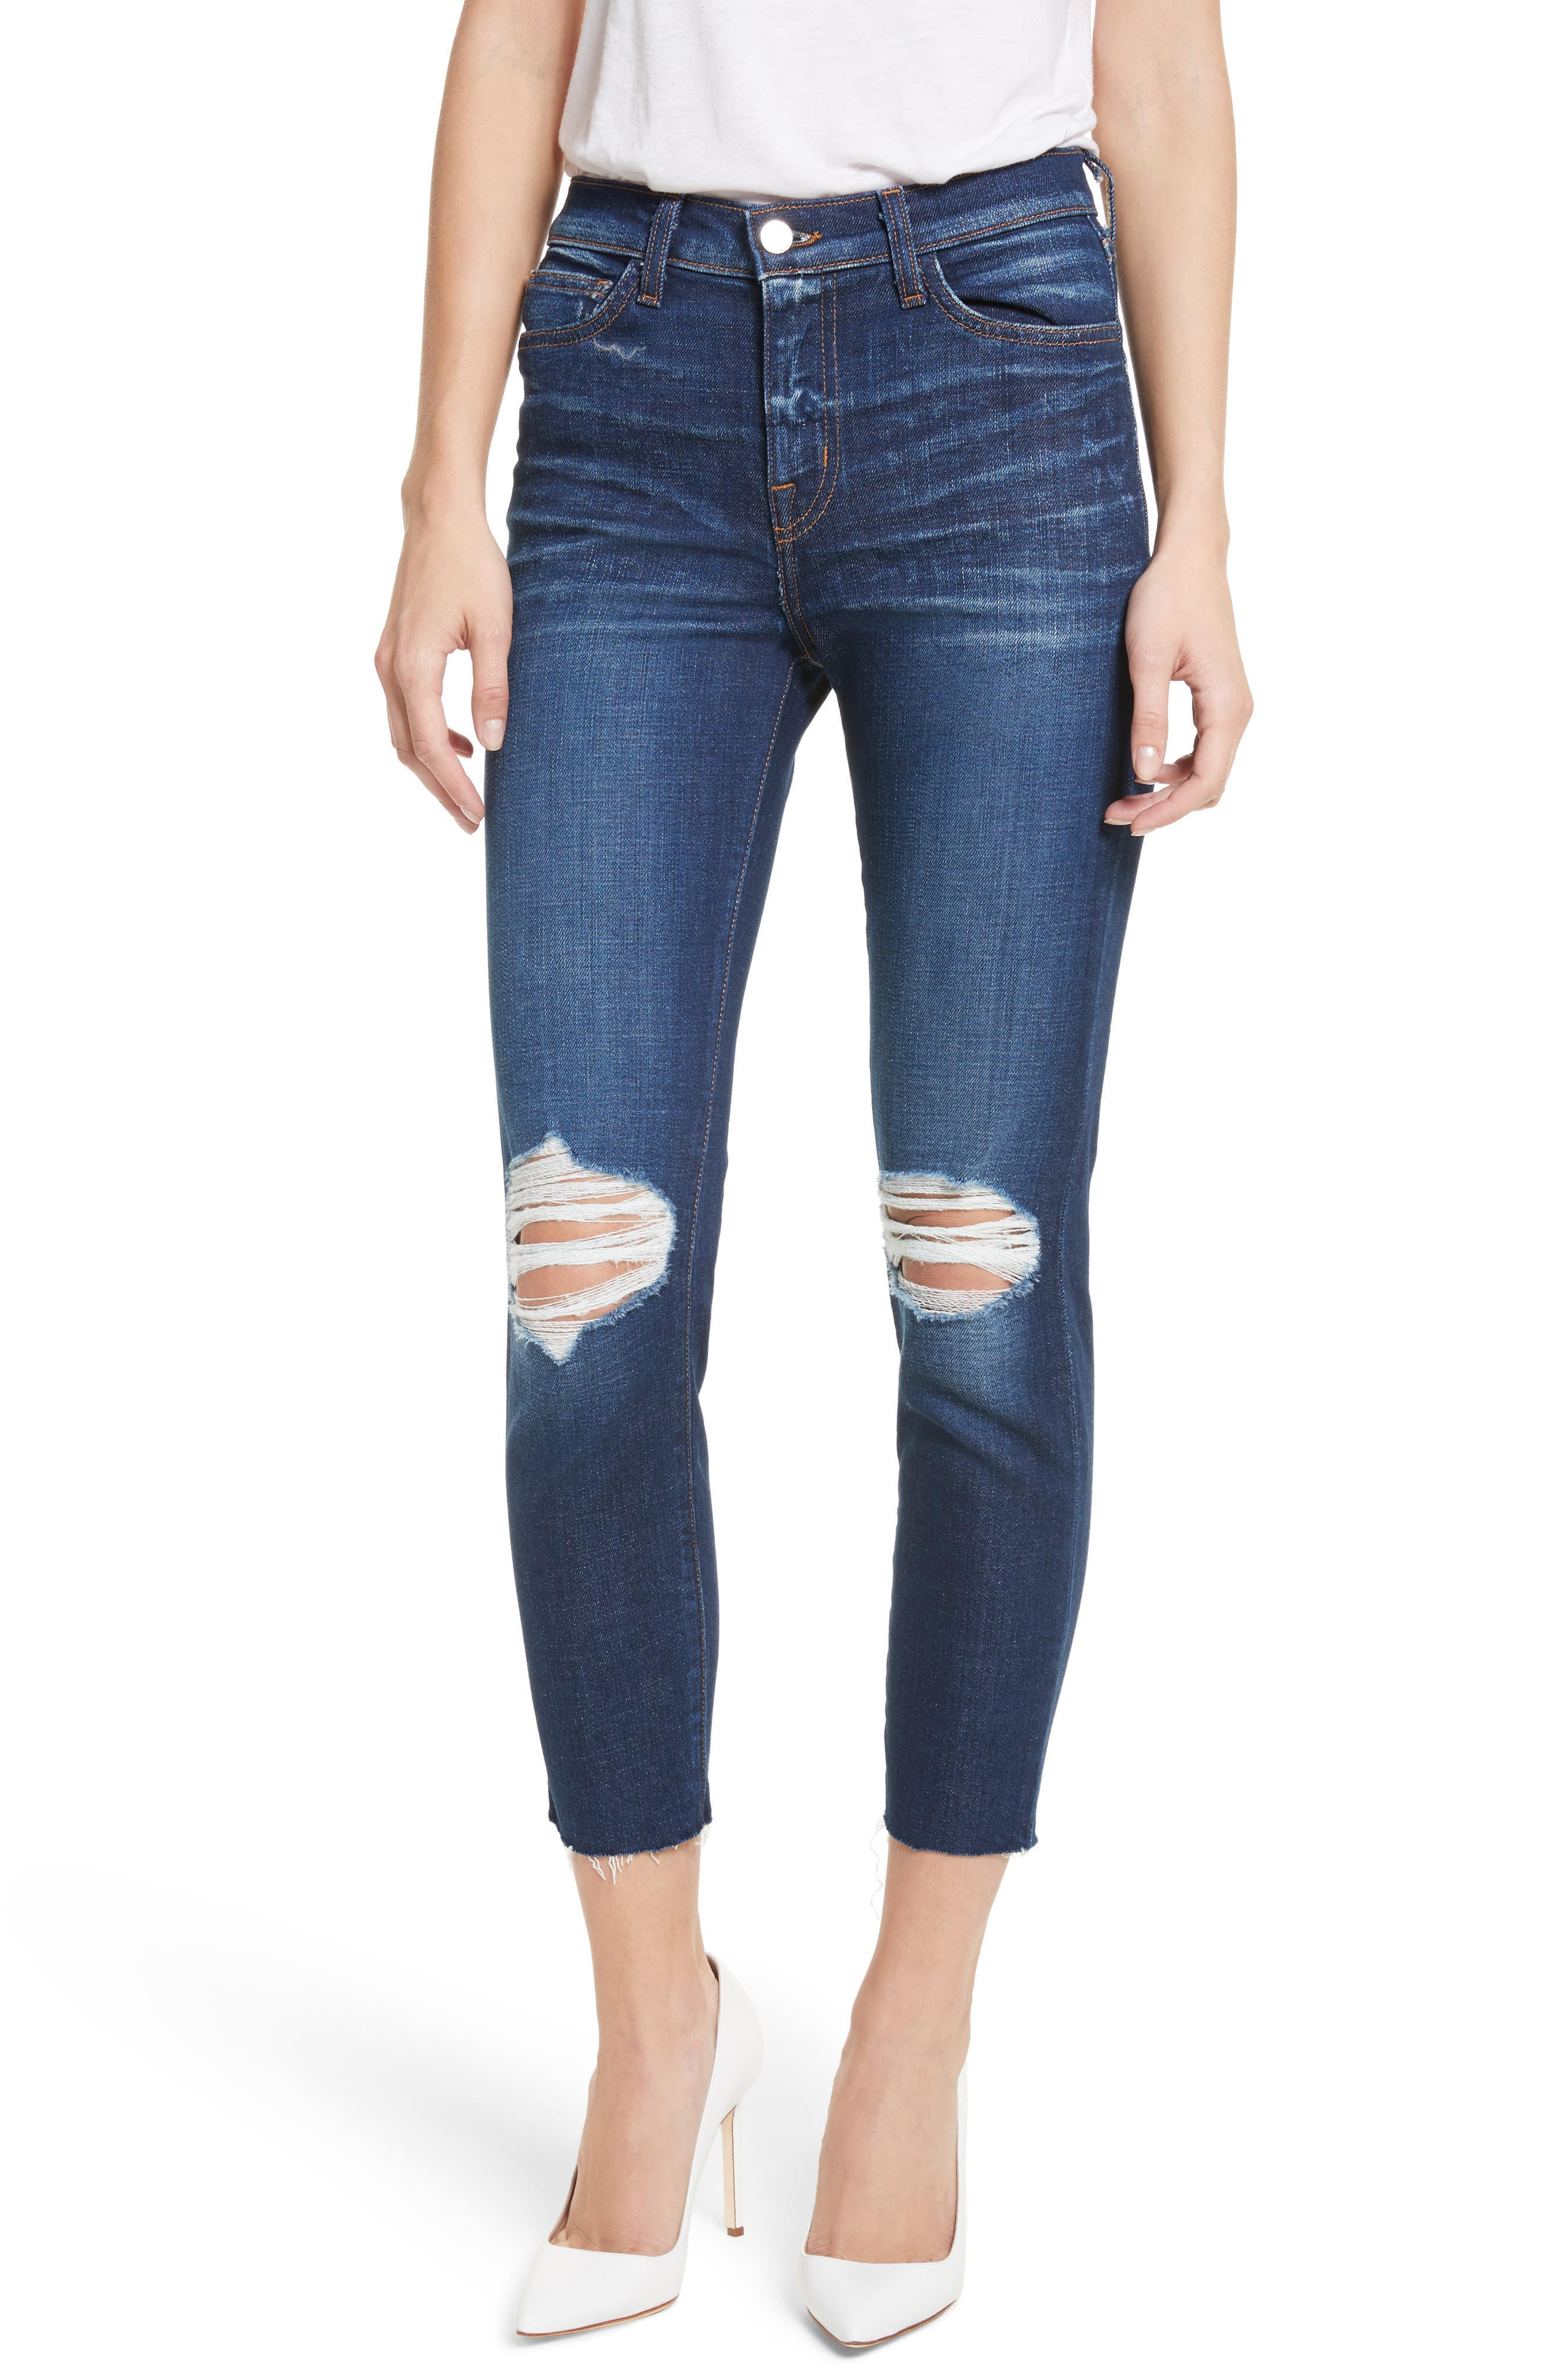 Abigail French Slim Ripped Skinny Jeans,                         Main,                         color, 401